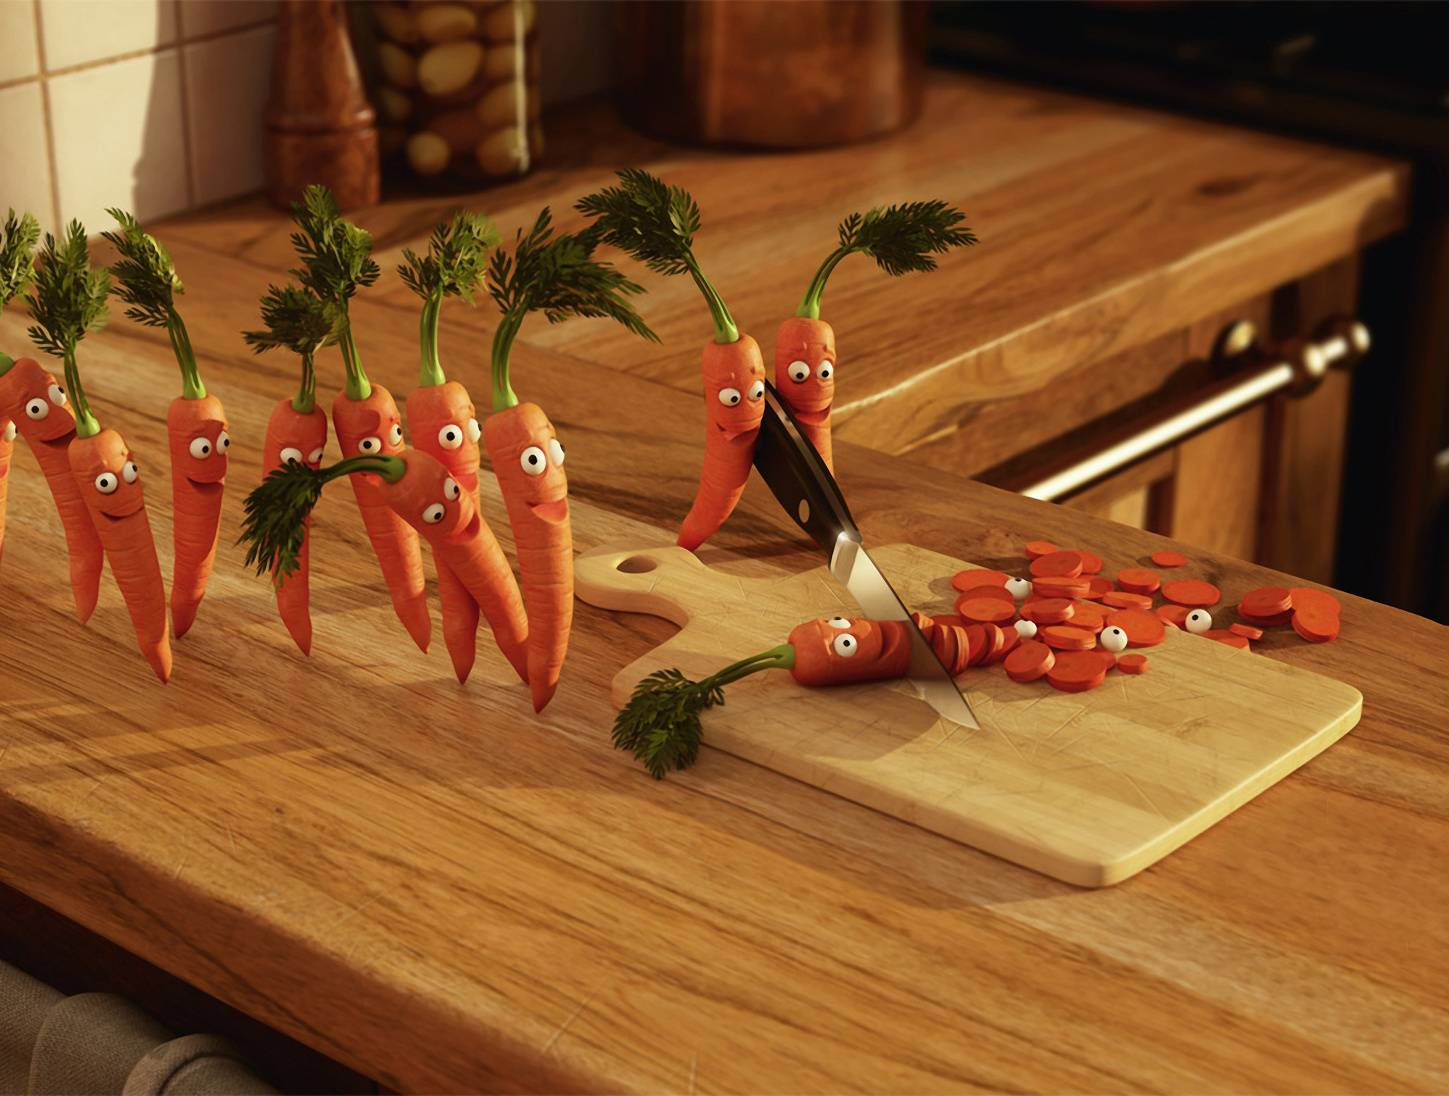 Bloodthirsty Carrots